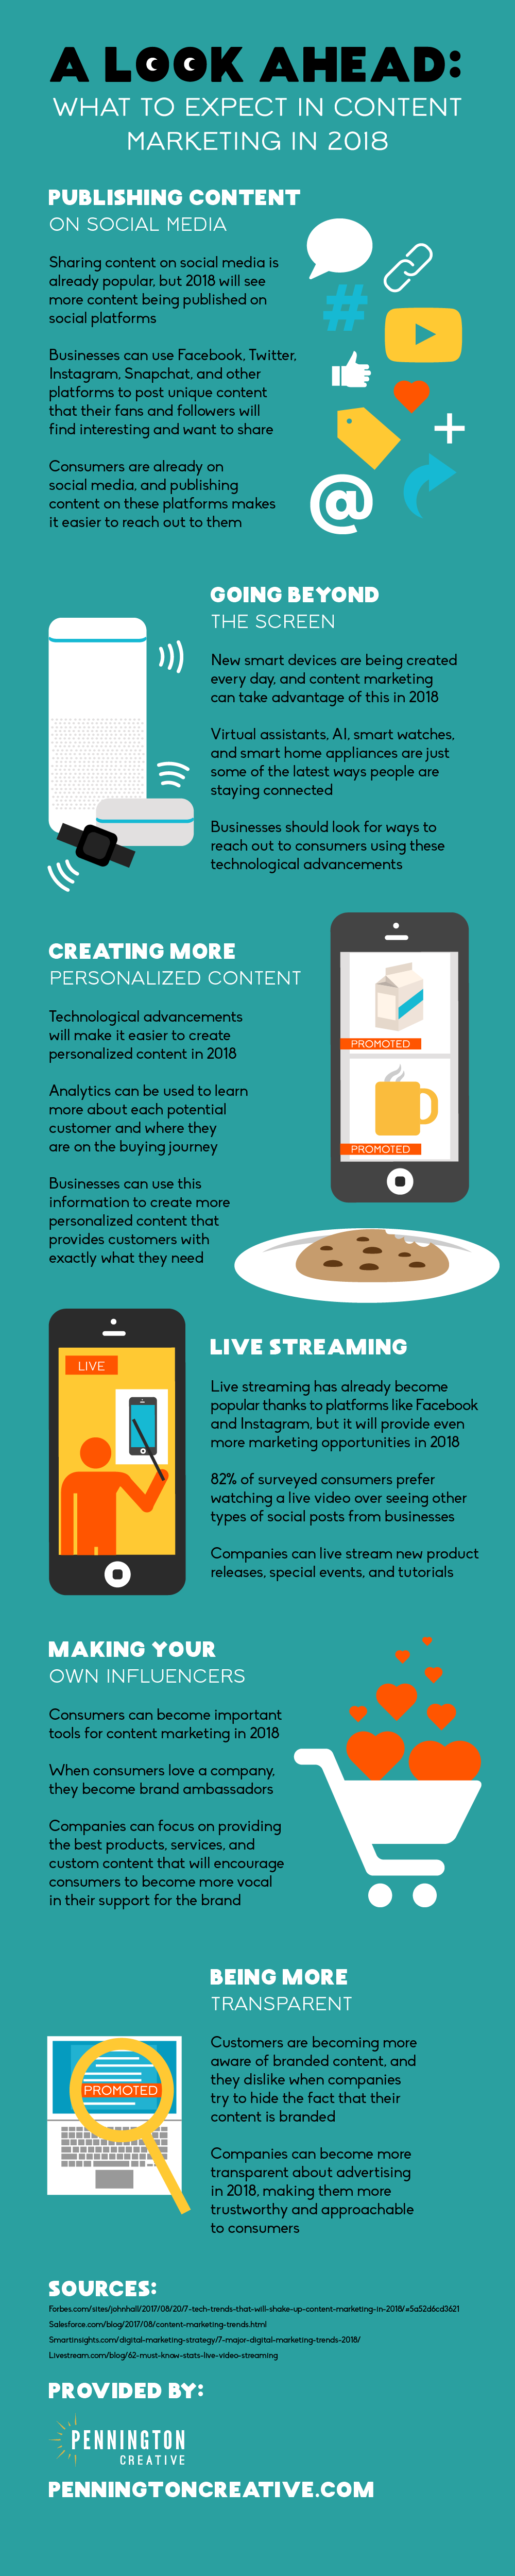 Infographic about what to expect in content marketing in 2018.